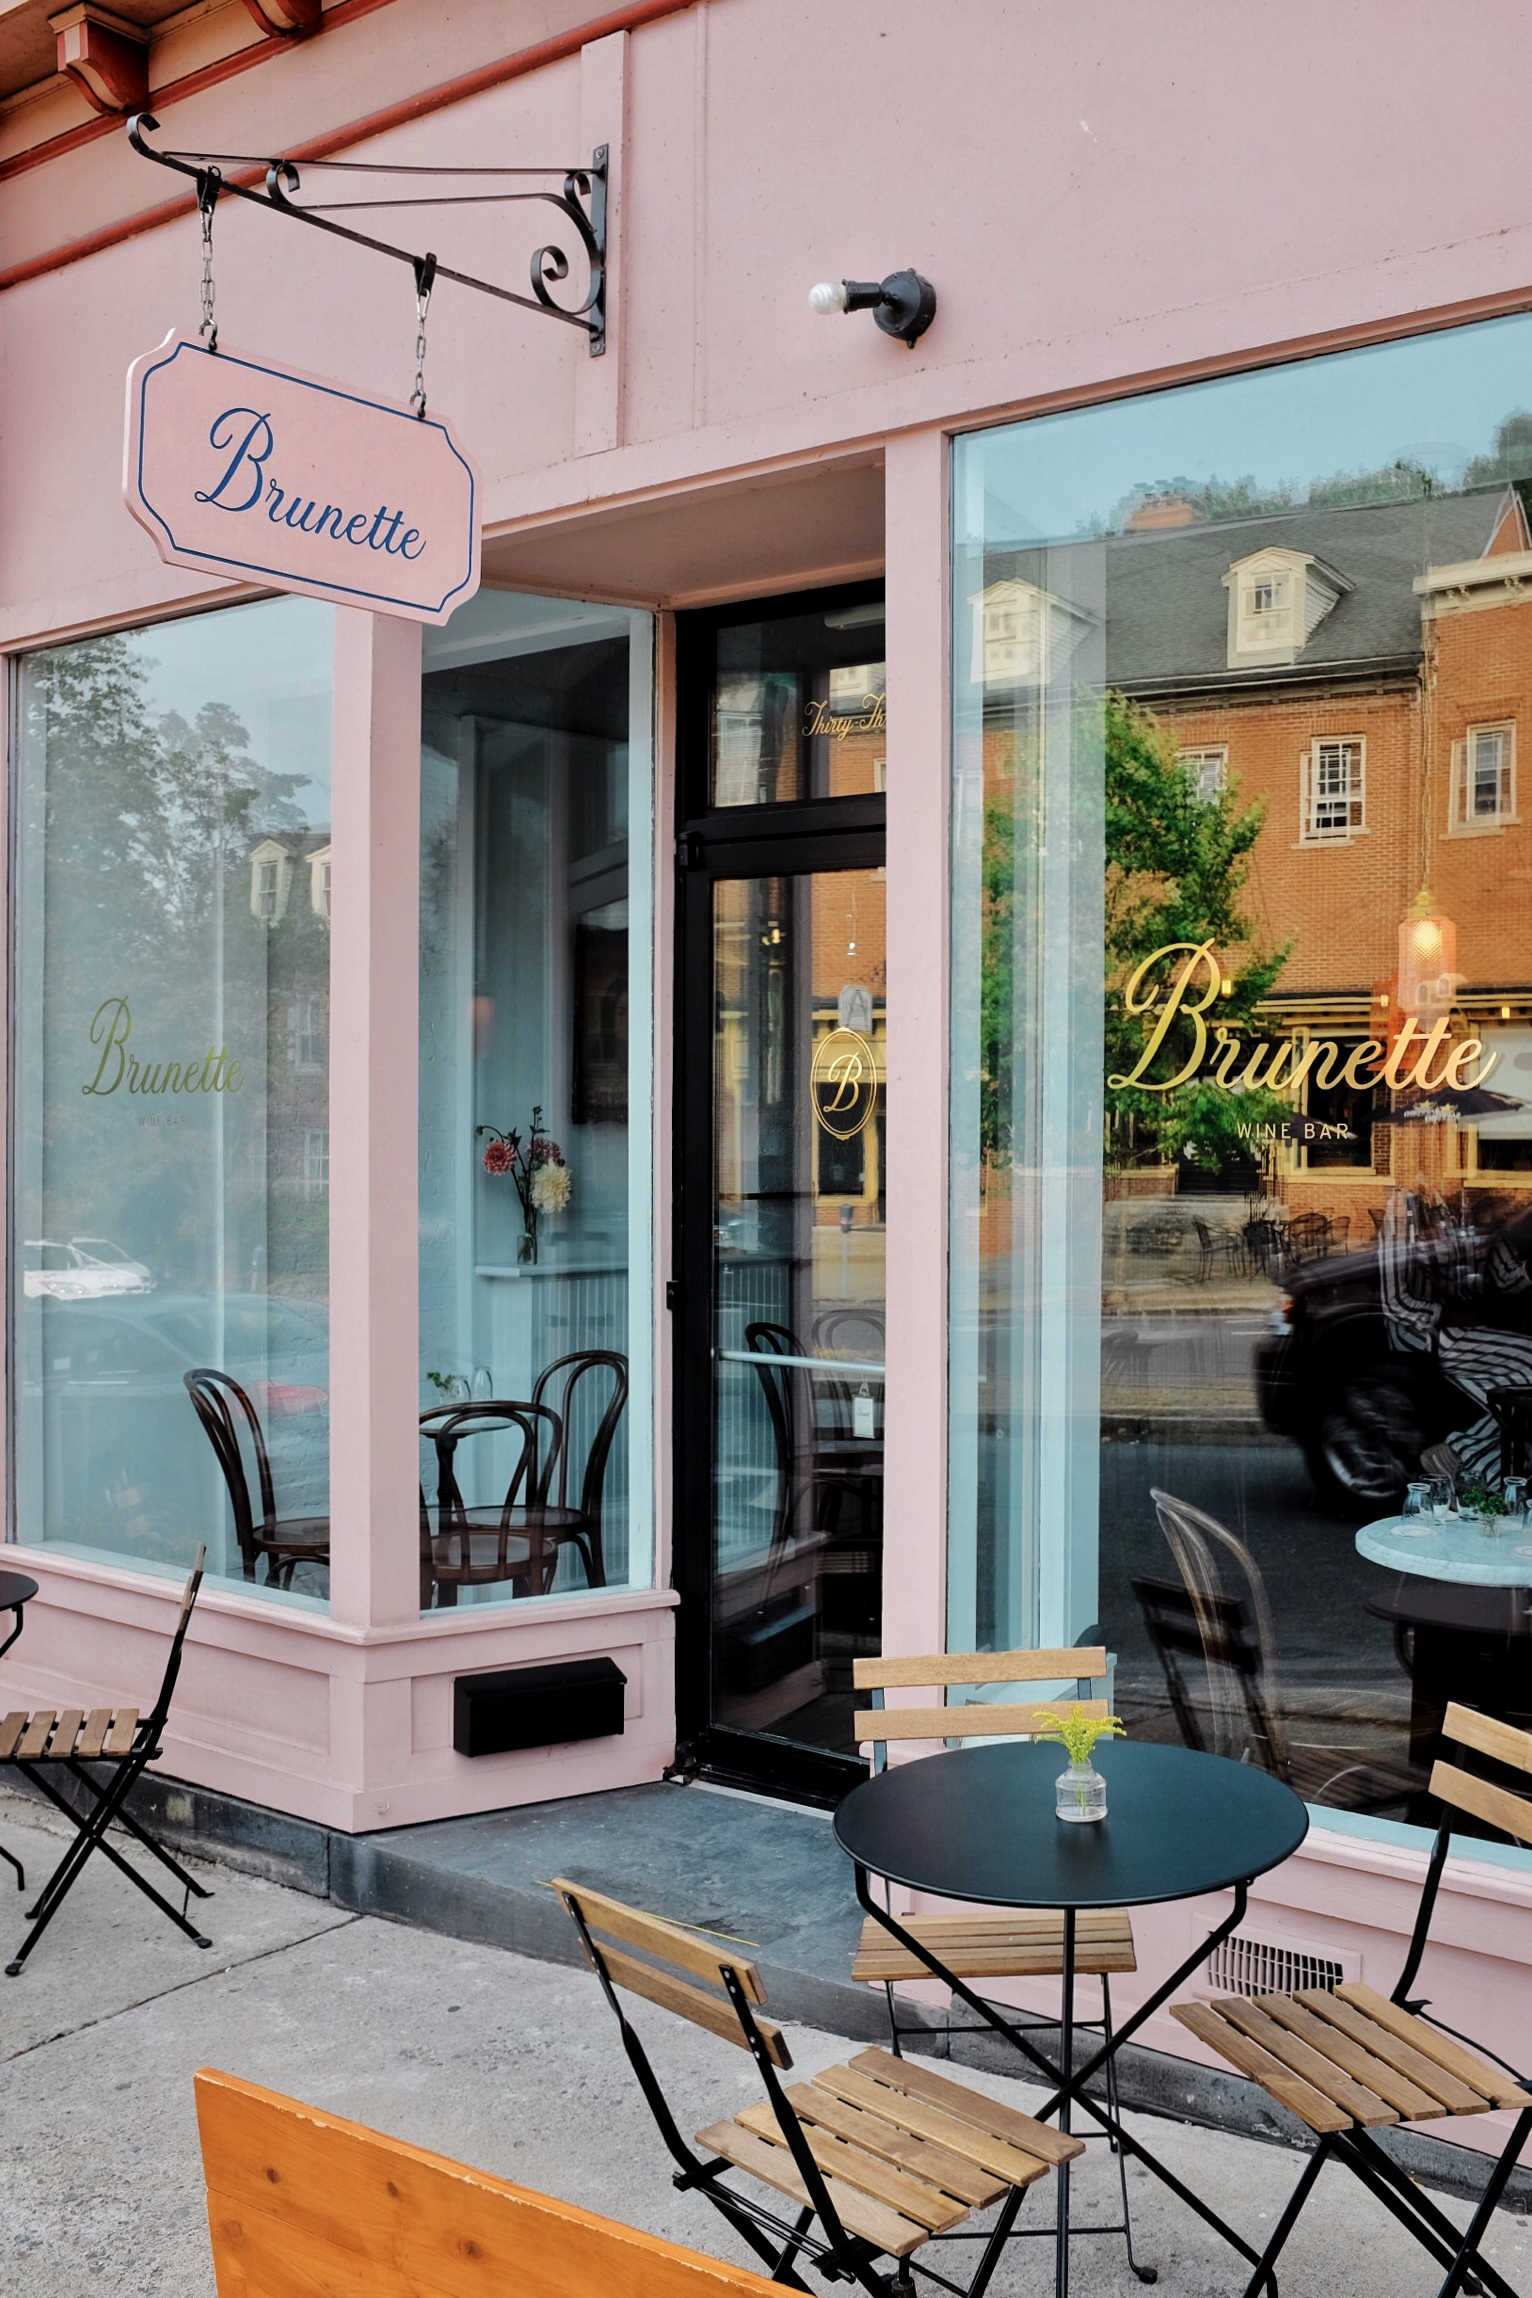 brunette wine bar places to eat in kingston ny